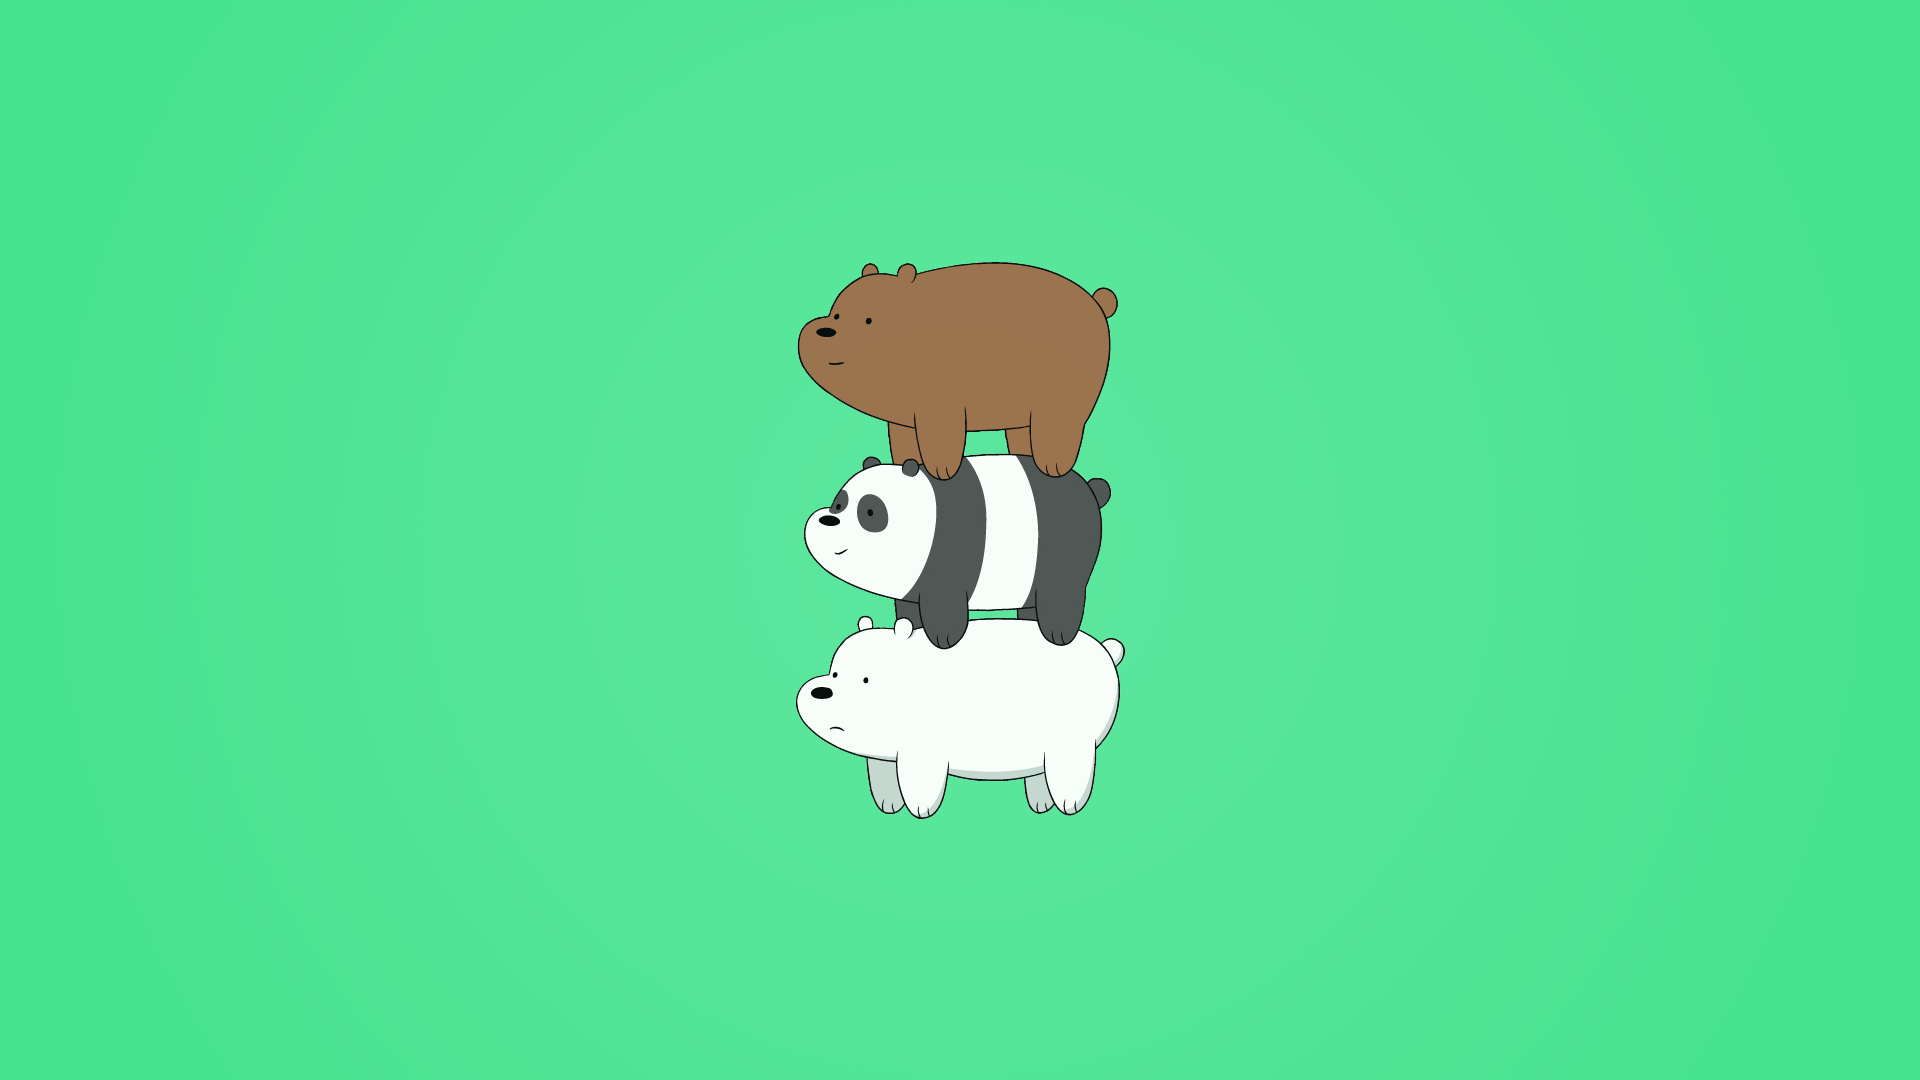 Bearstack wallpaper (Variations in comments) : webarebears